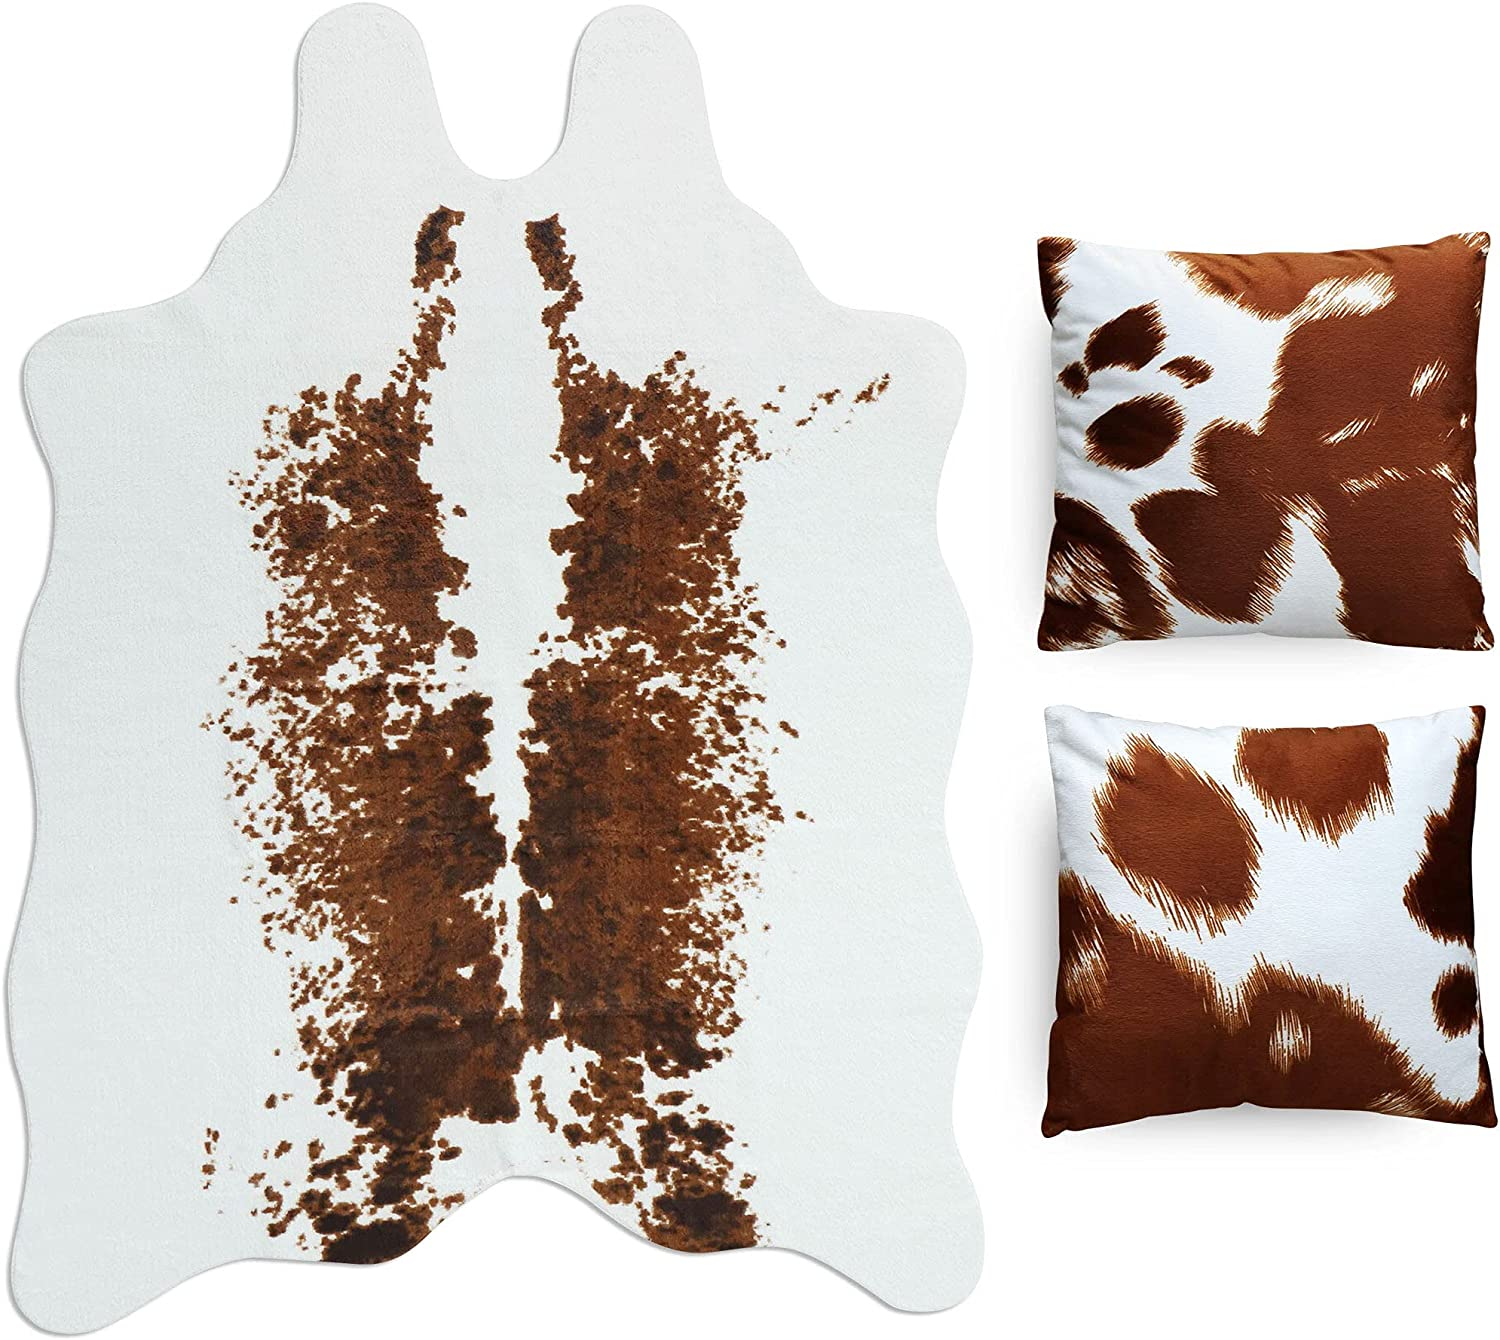 CONBEN Cow Print Rug - 4.6x6.6 Ft - 2 Cushion Covers Included - Faux Cowhide Decor, Polyester Material - Non-Slip Rubber - Farmhouse, Western Floor Rugs for Living Room, Bedroom, Office - White